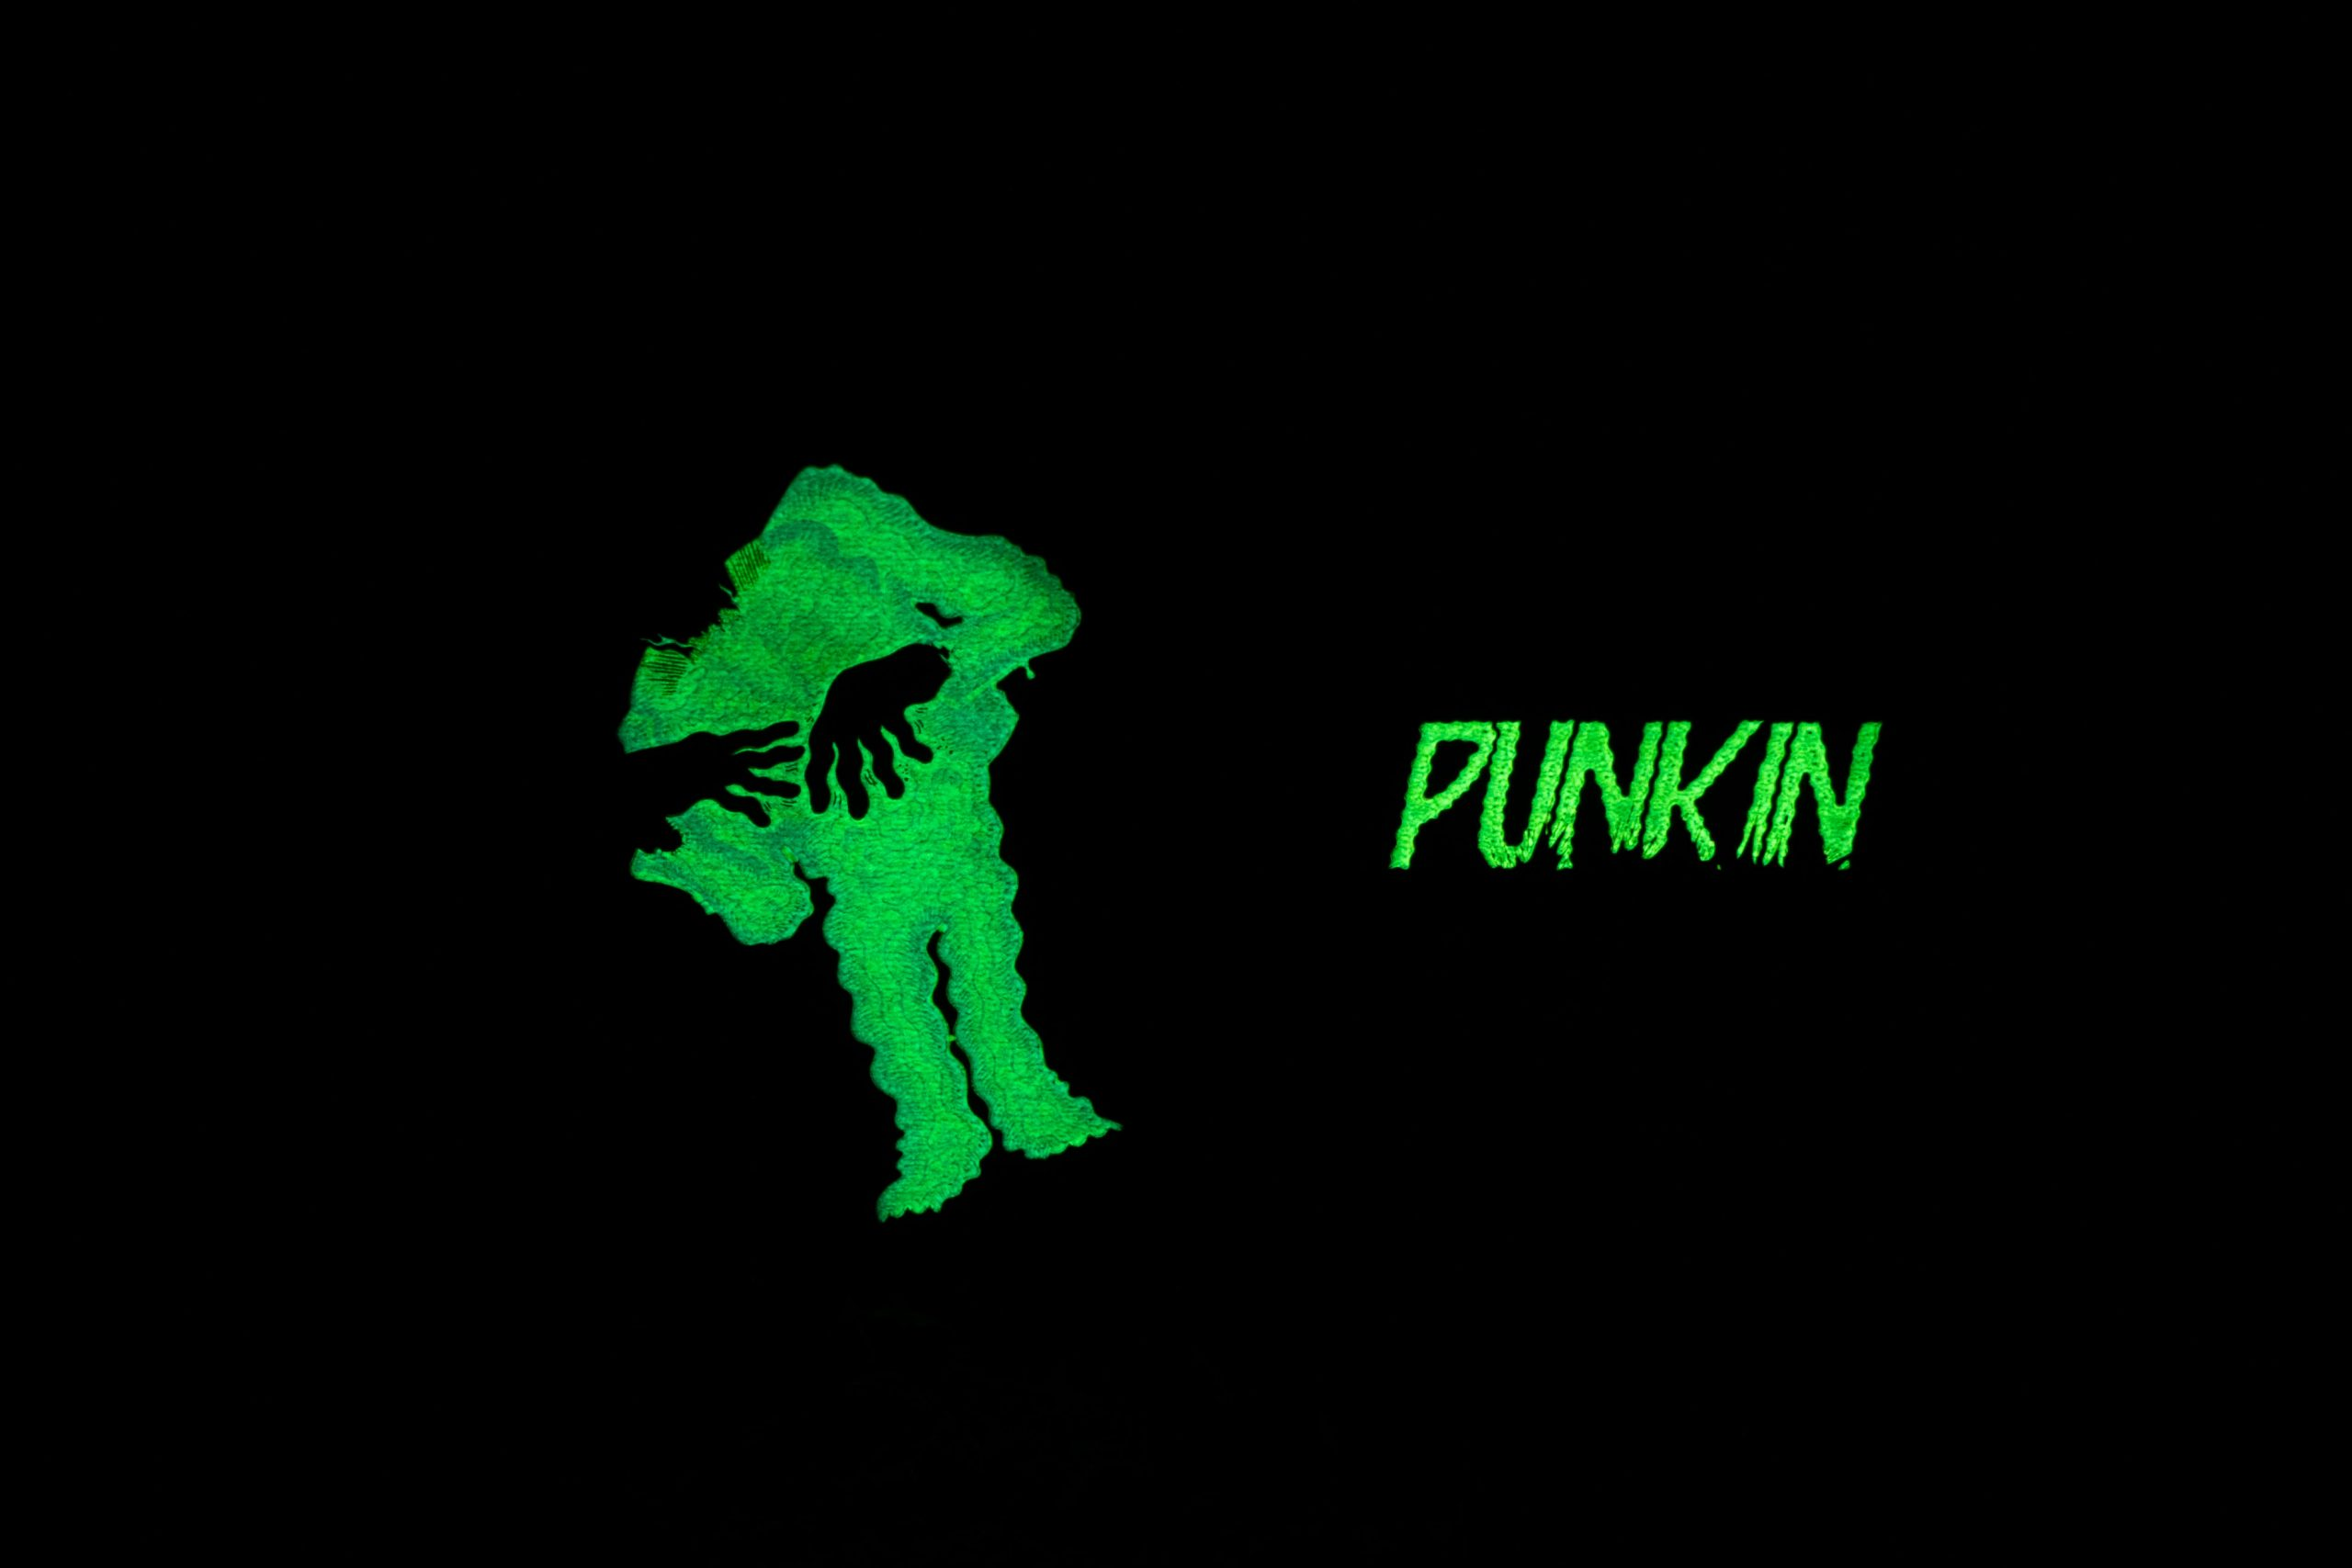 Dogfish Head Punkin Ale Available Now in Glow-in-the-dark Packaging thumbnail